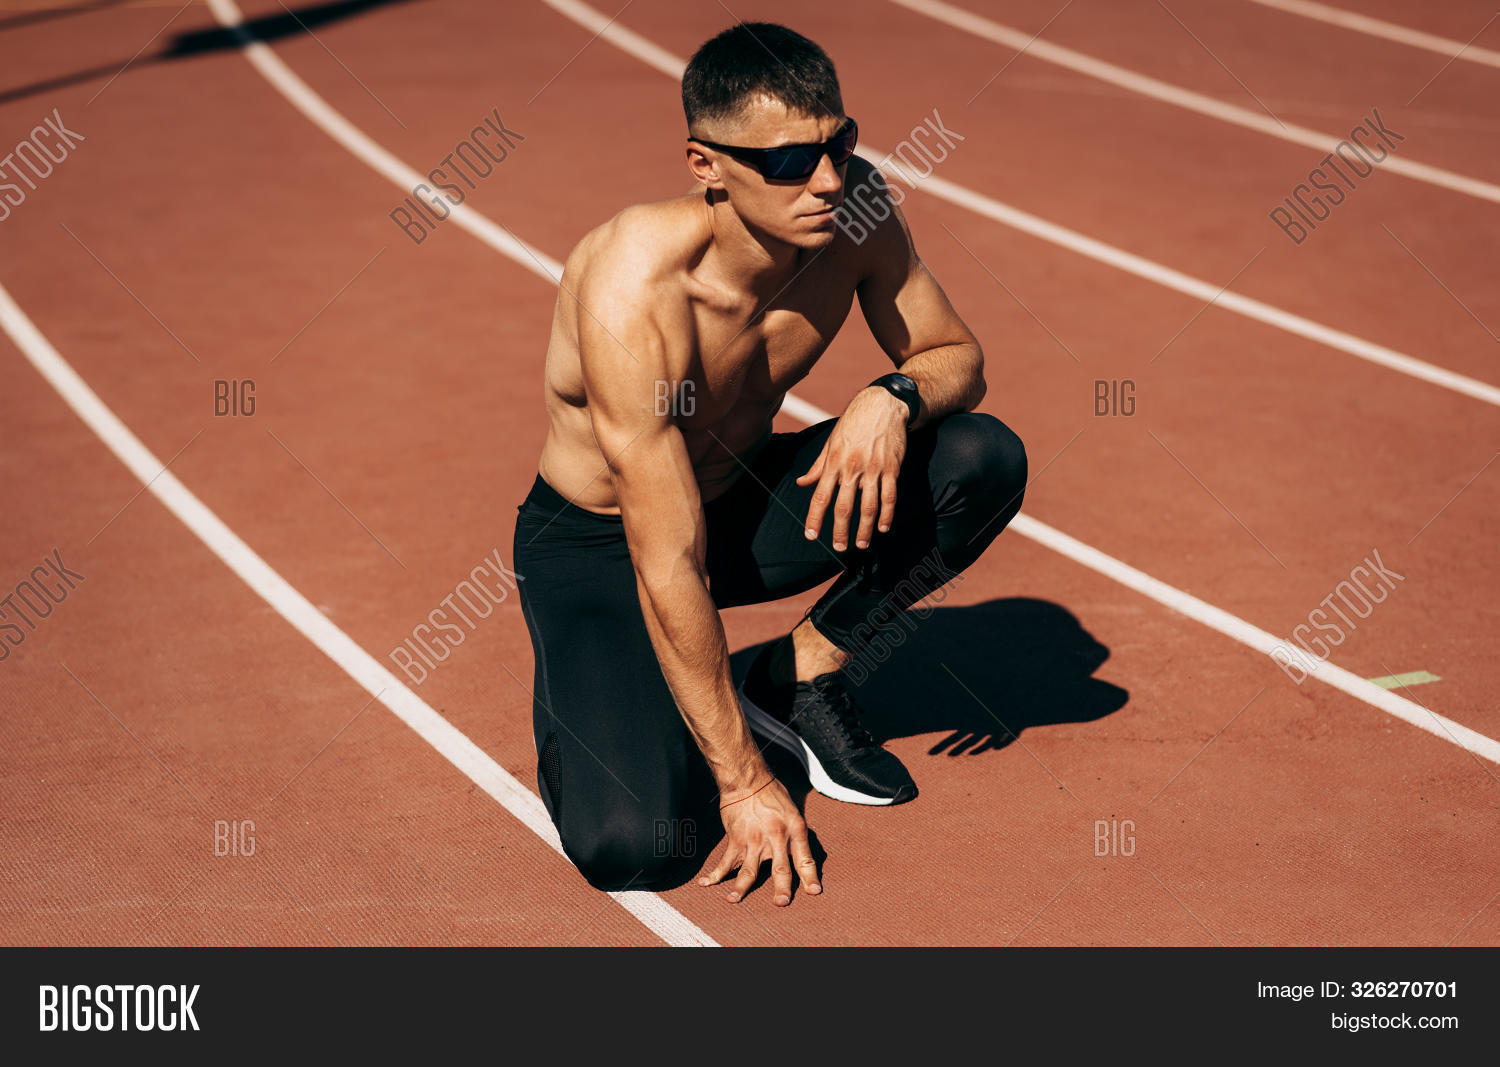 Shirtless Fit Man Preparing For Running On Racetrack At Stadium. Male Runner Sprinting During Traini